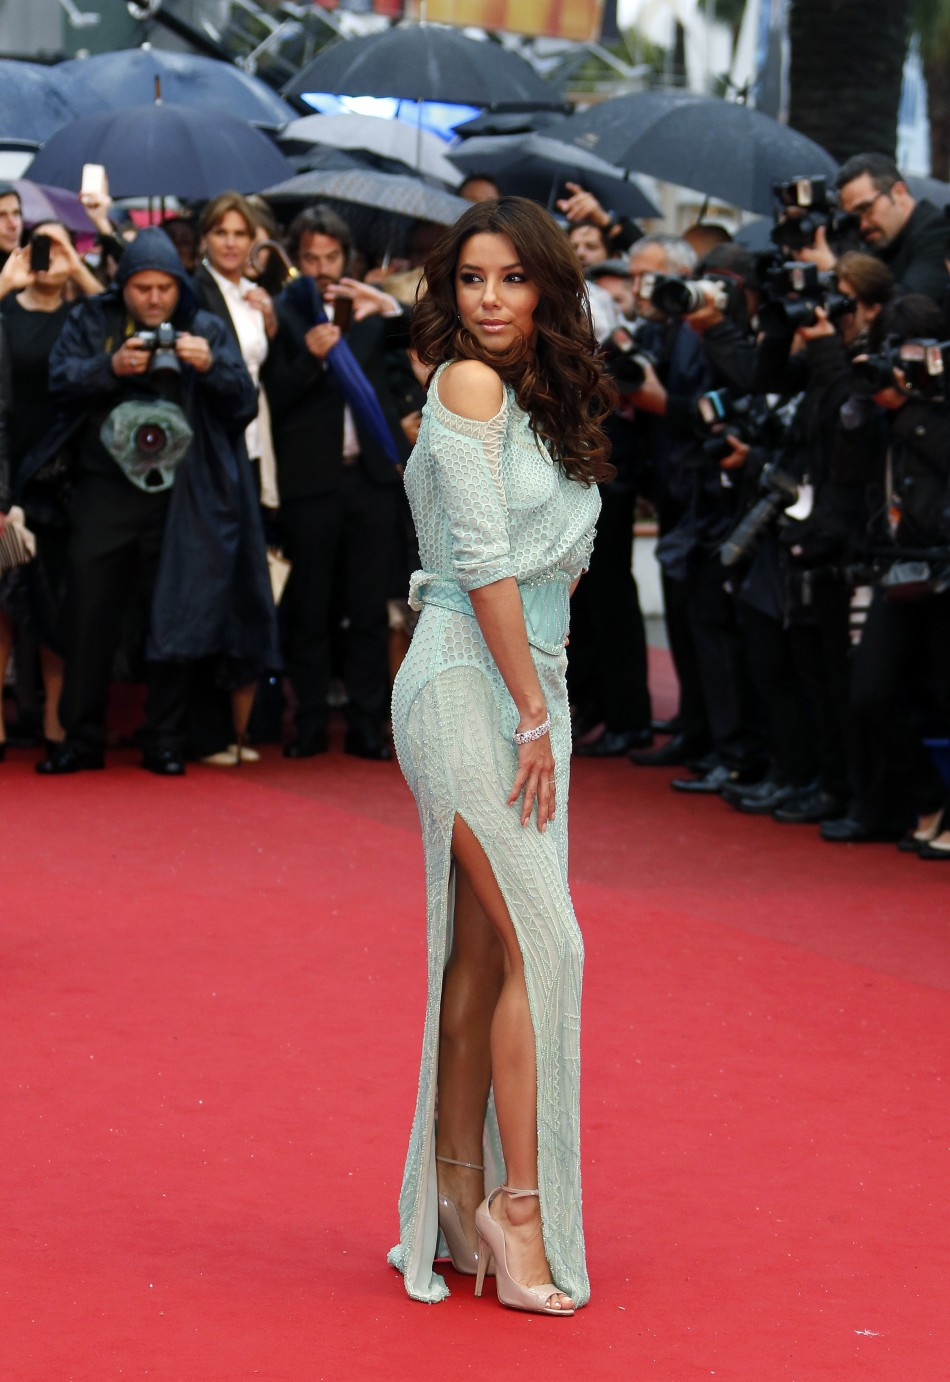 Actress Eva Longoria poses on the red carpet as she arrives for the screening of the film Jimmy P. Psychotherapy of a Plains Indian in competition at the 66th Cannes Film Festival in Cannes May 18, 2013.